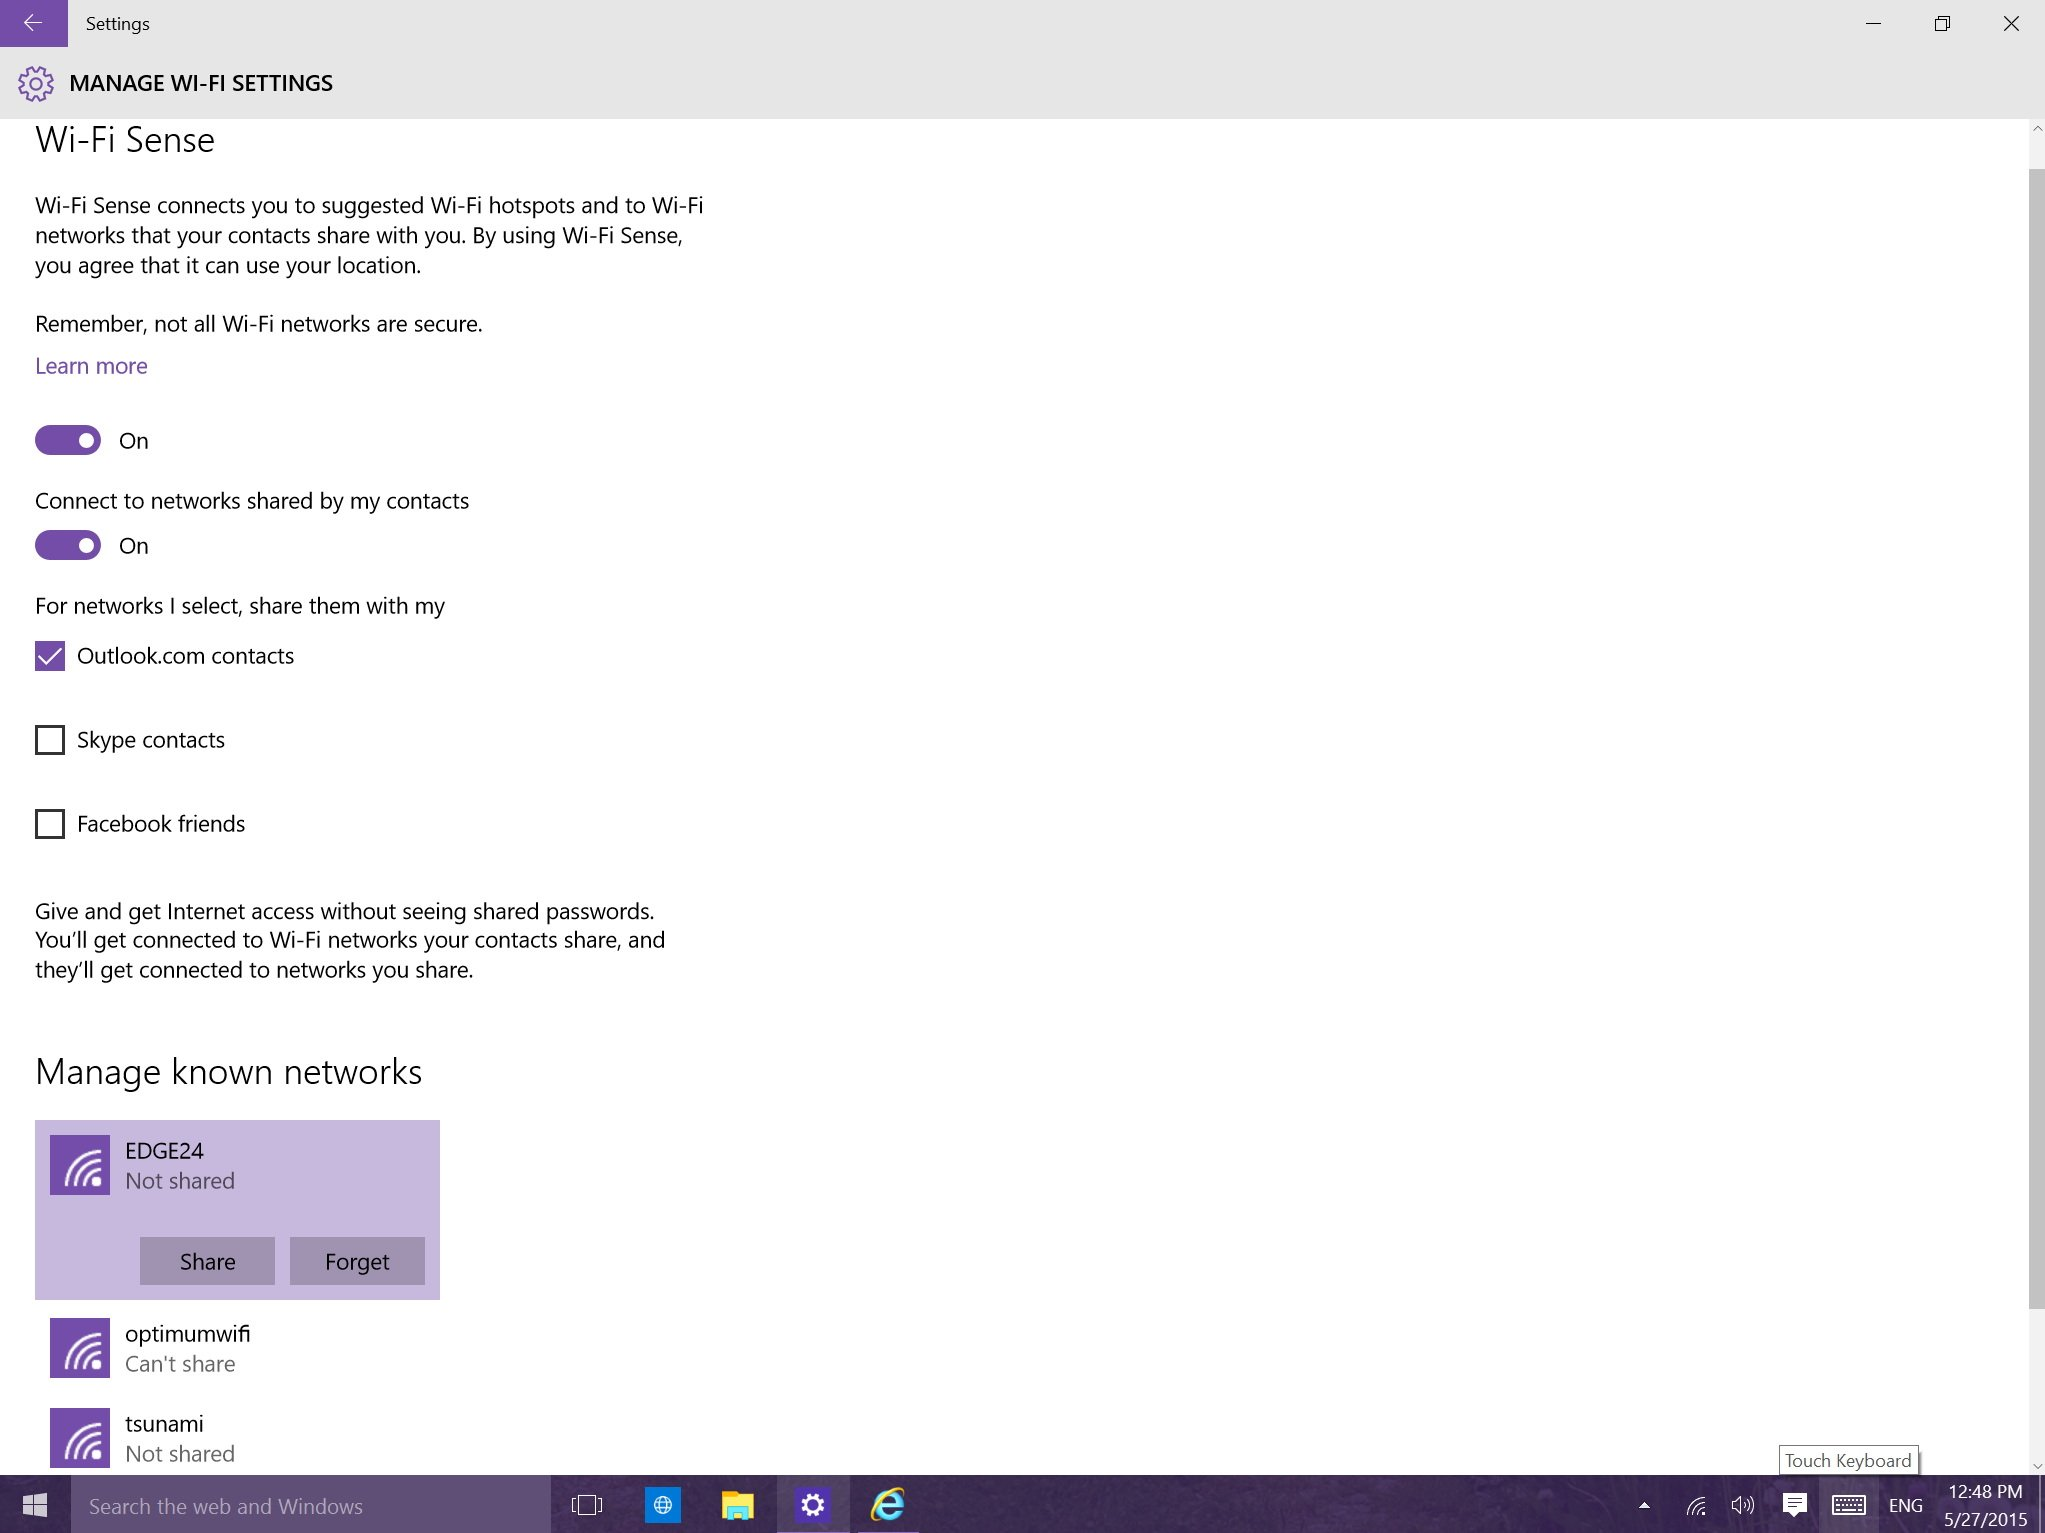 how to forget a network windows 10